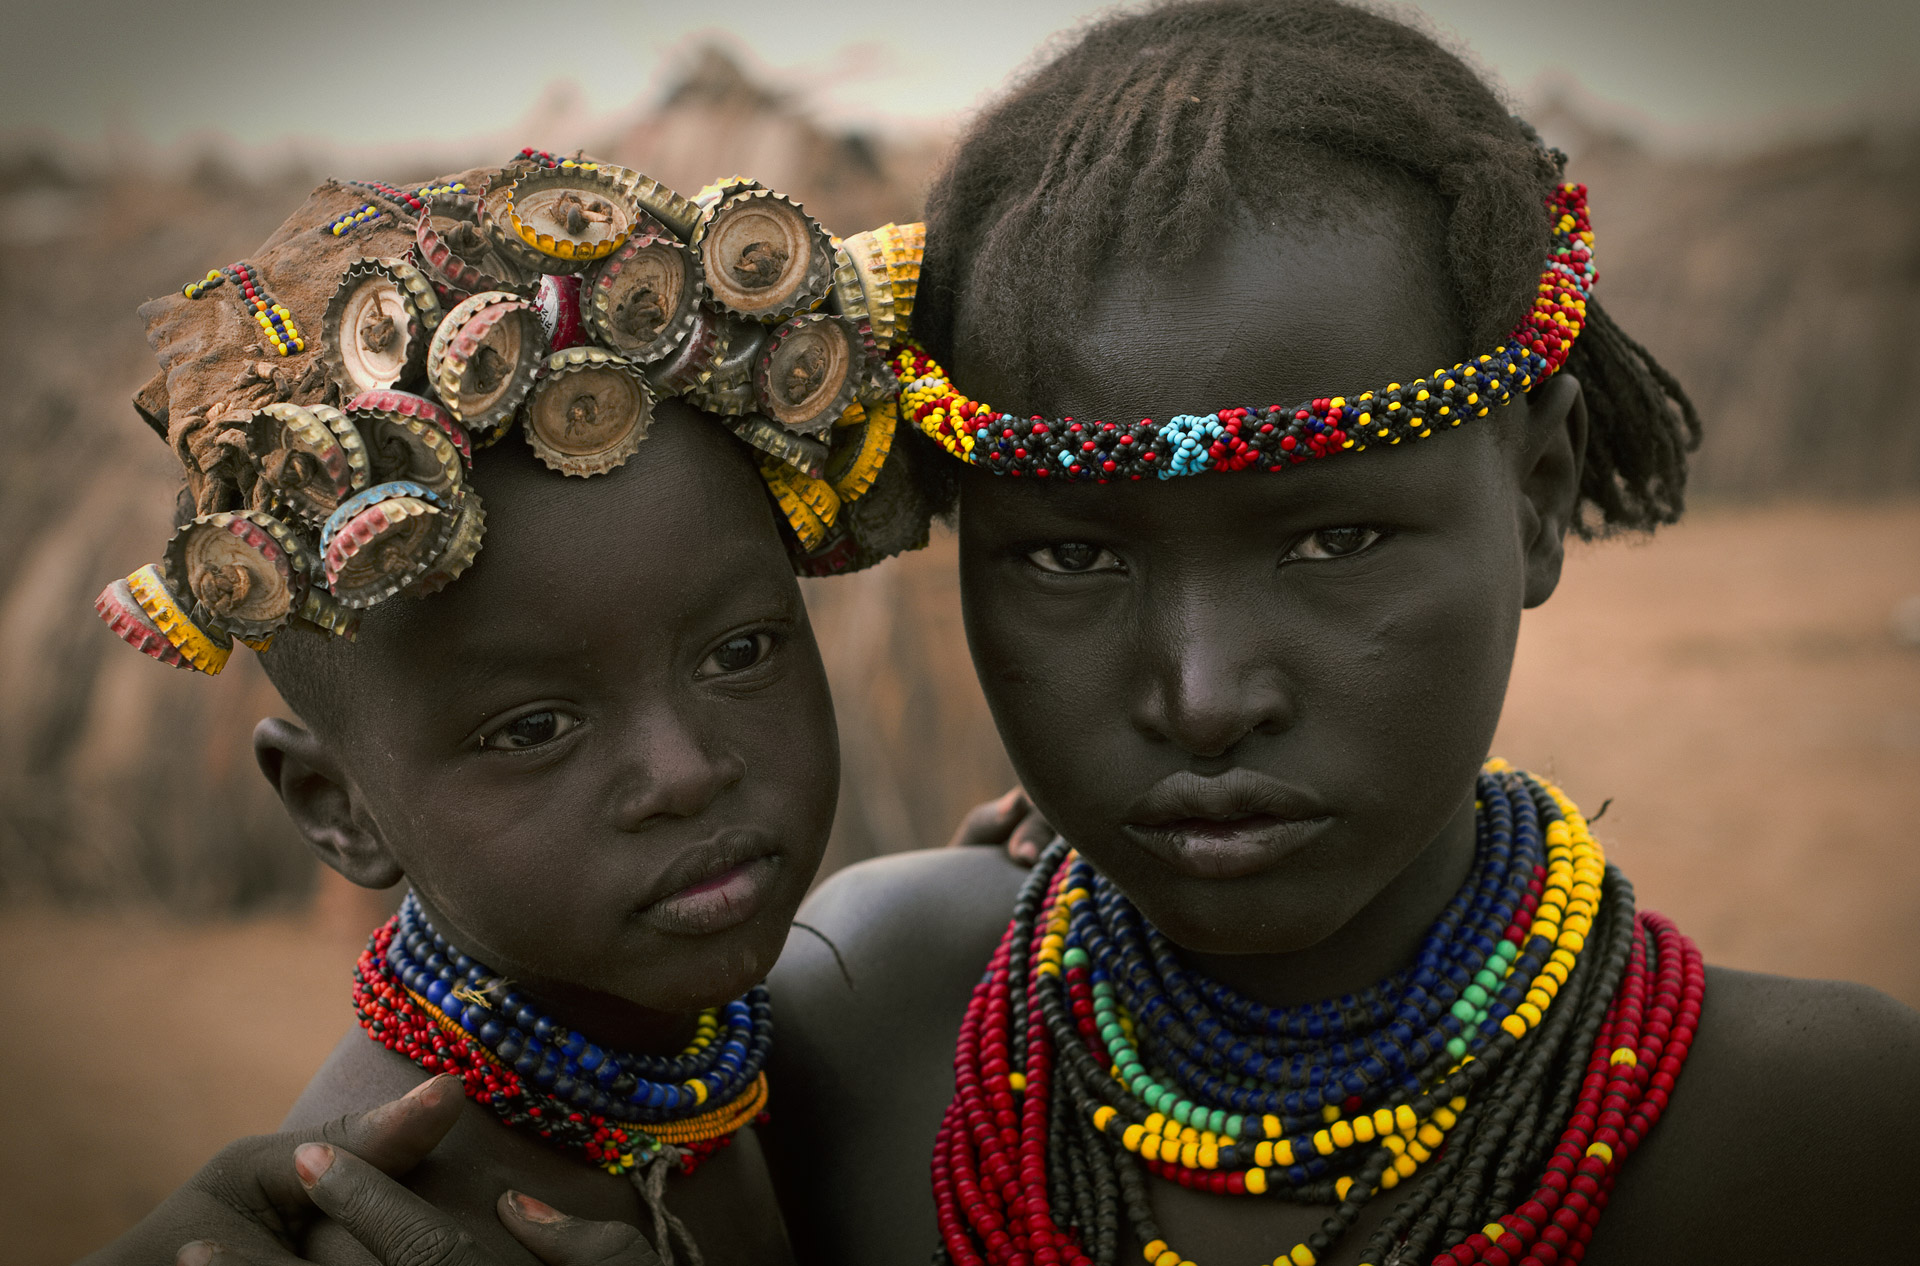 A young woman and her little sister with caps from bottles woven into her hair.